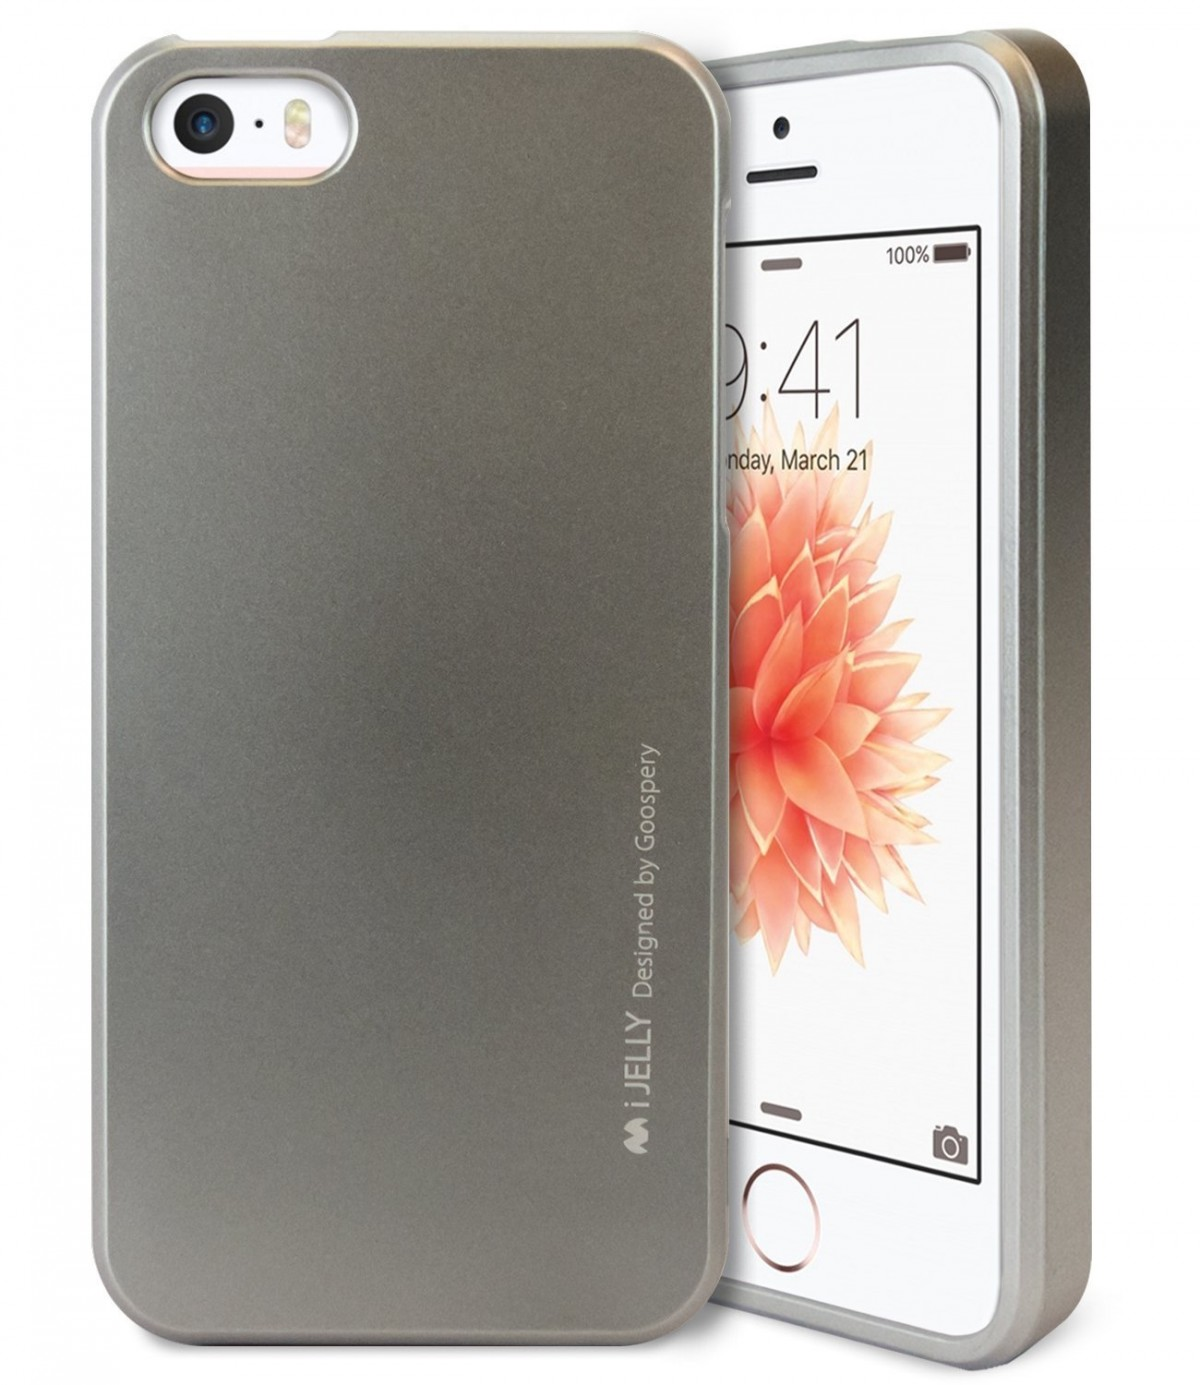 Pouzdro MERCURY iJELLY METAL APPLE IPHONE 5/5S/5SE ŠEDÉ